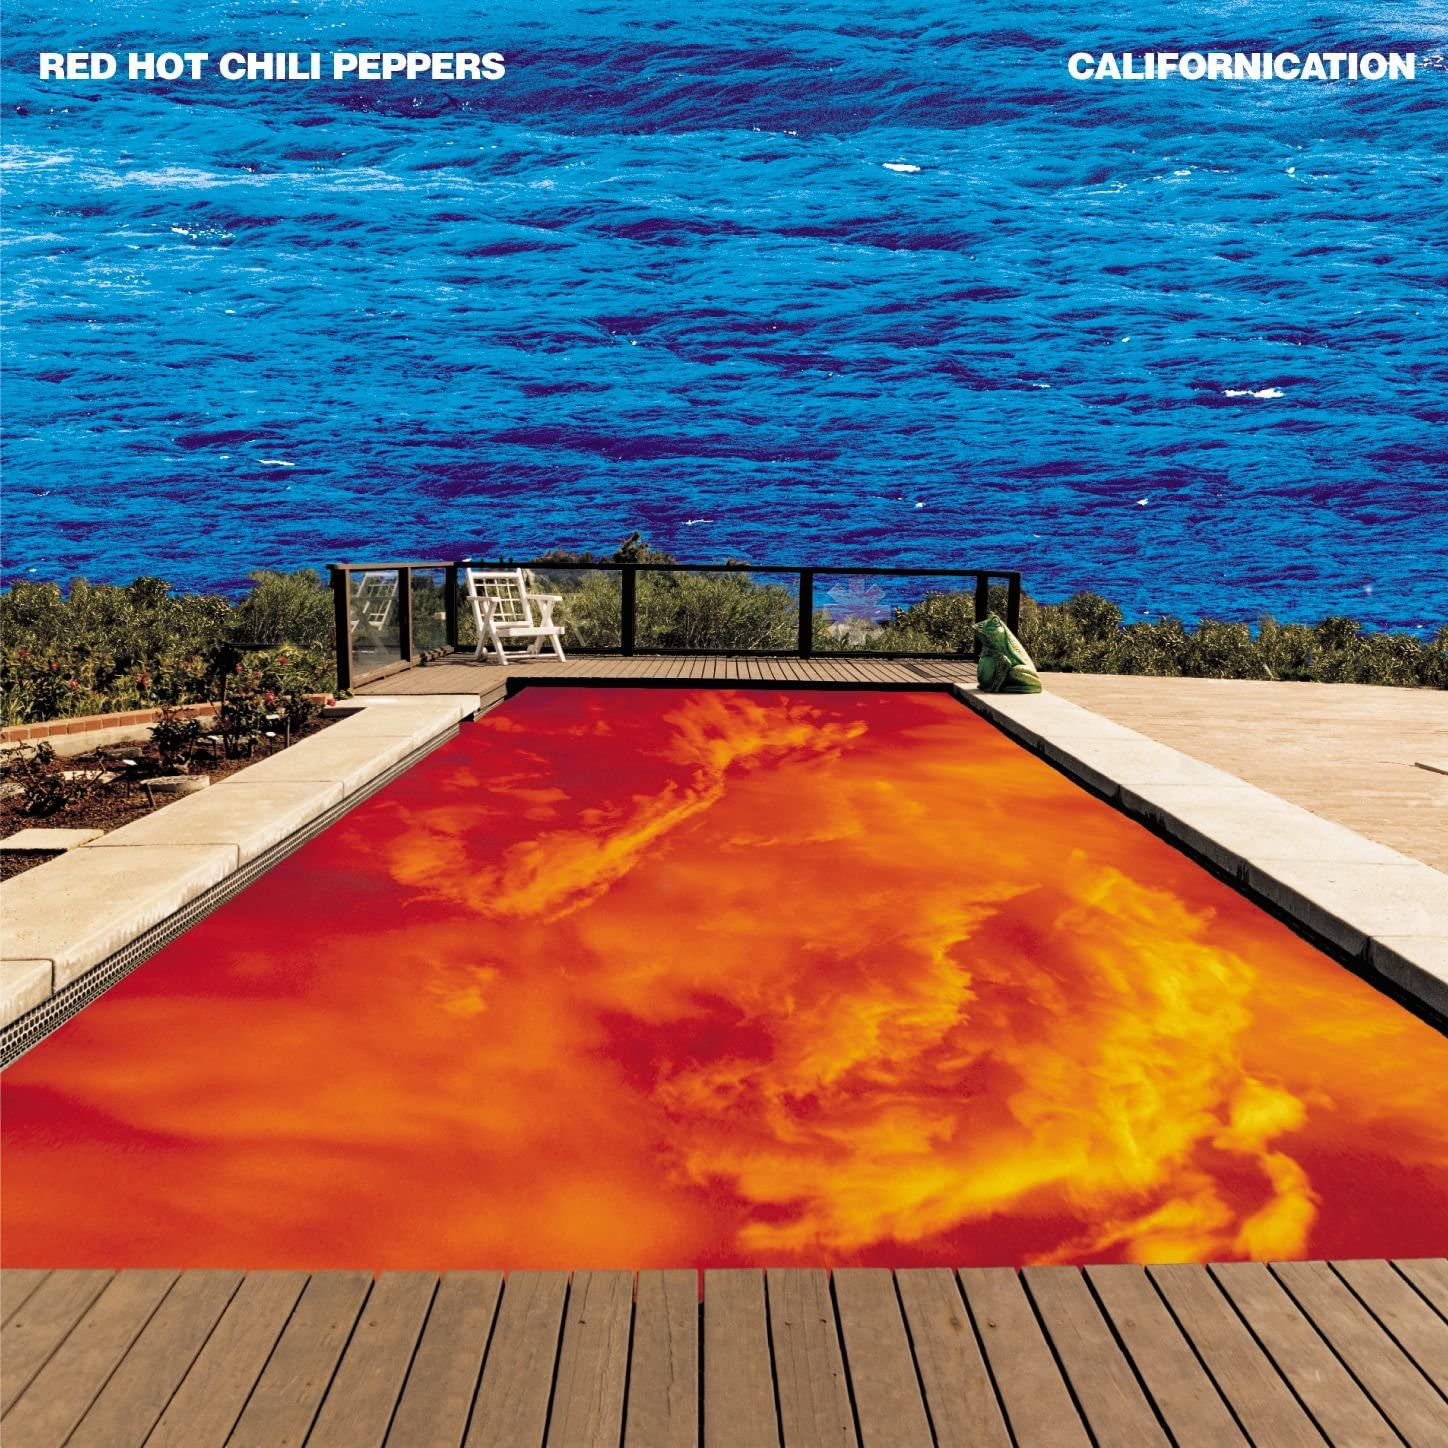 """8. """"Around The World"""" - 'Californication' (1999)  The leadoff song on 'Californication,' the band's reunion with John Frusicante, announced that the band's chemistry was as powerful as ever. Flea drops one of his best bass lines, Frusciante's guitar playing and harmony vocals were pristine and Kiedis' lyrics and his scatting improvisations were classic Chili Peppers funk."""